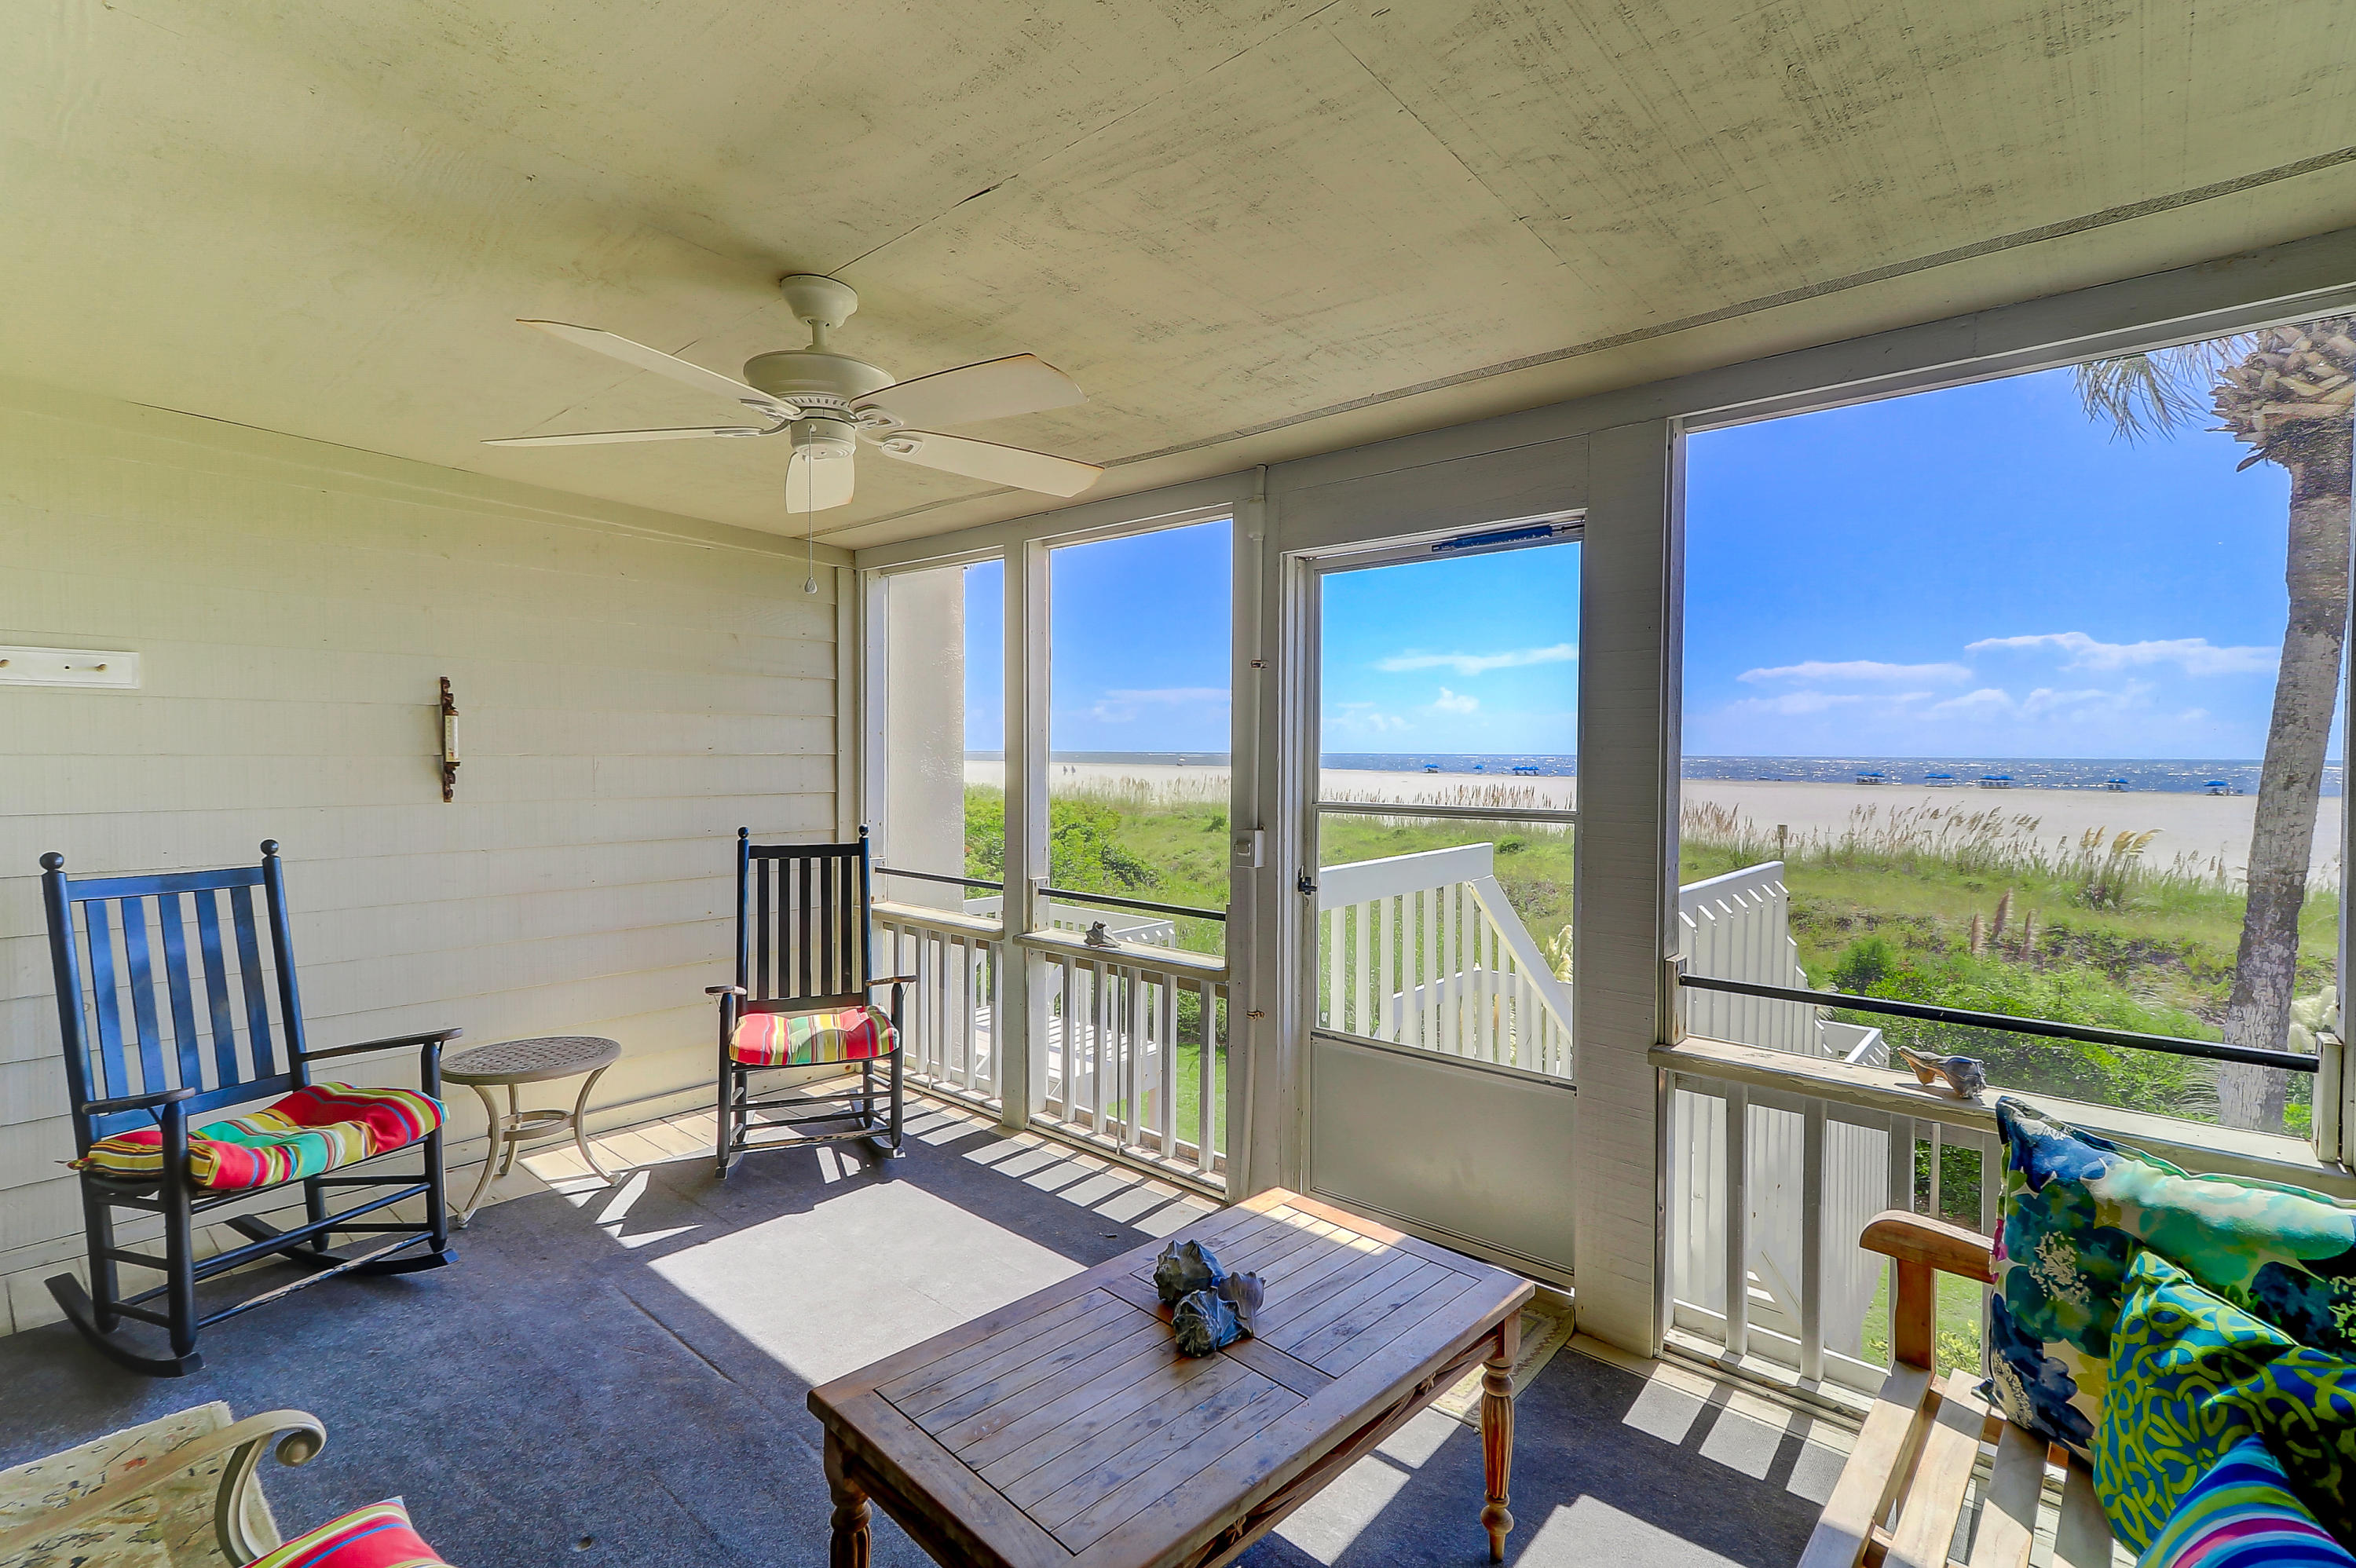 Beach Club Villas Homes For Sale - 33 Beach Club Villas, Isle of Palms, SC - 42